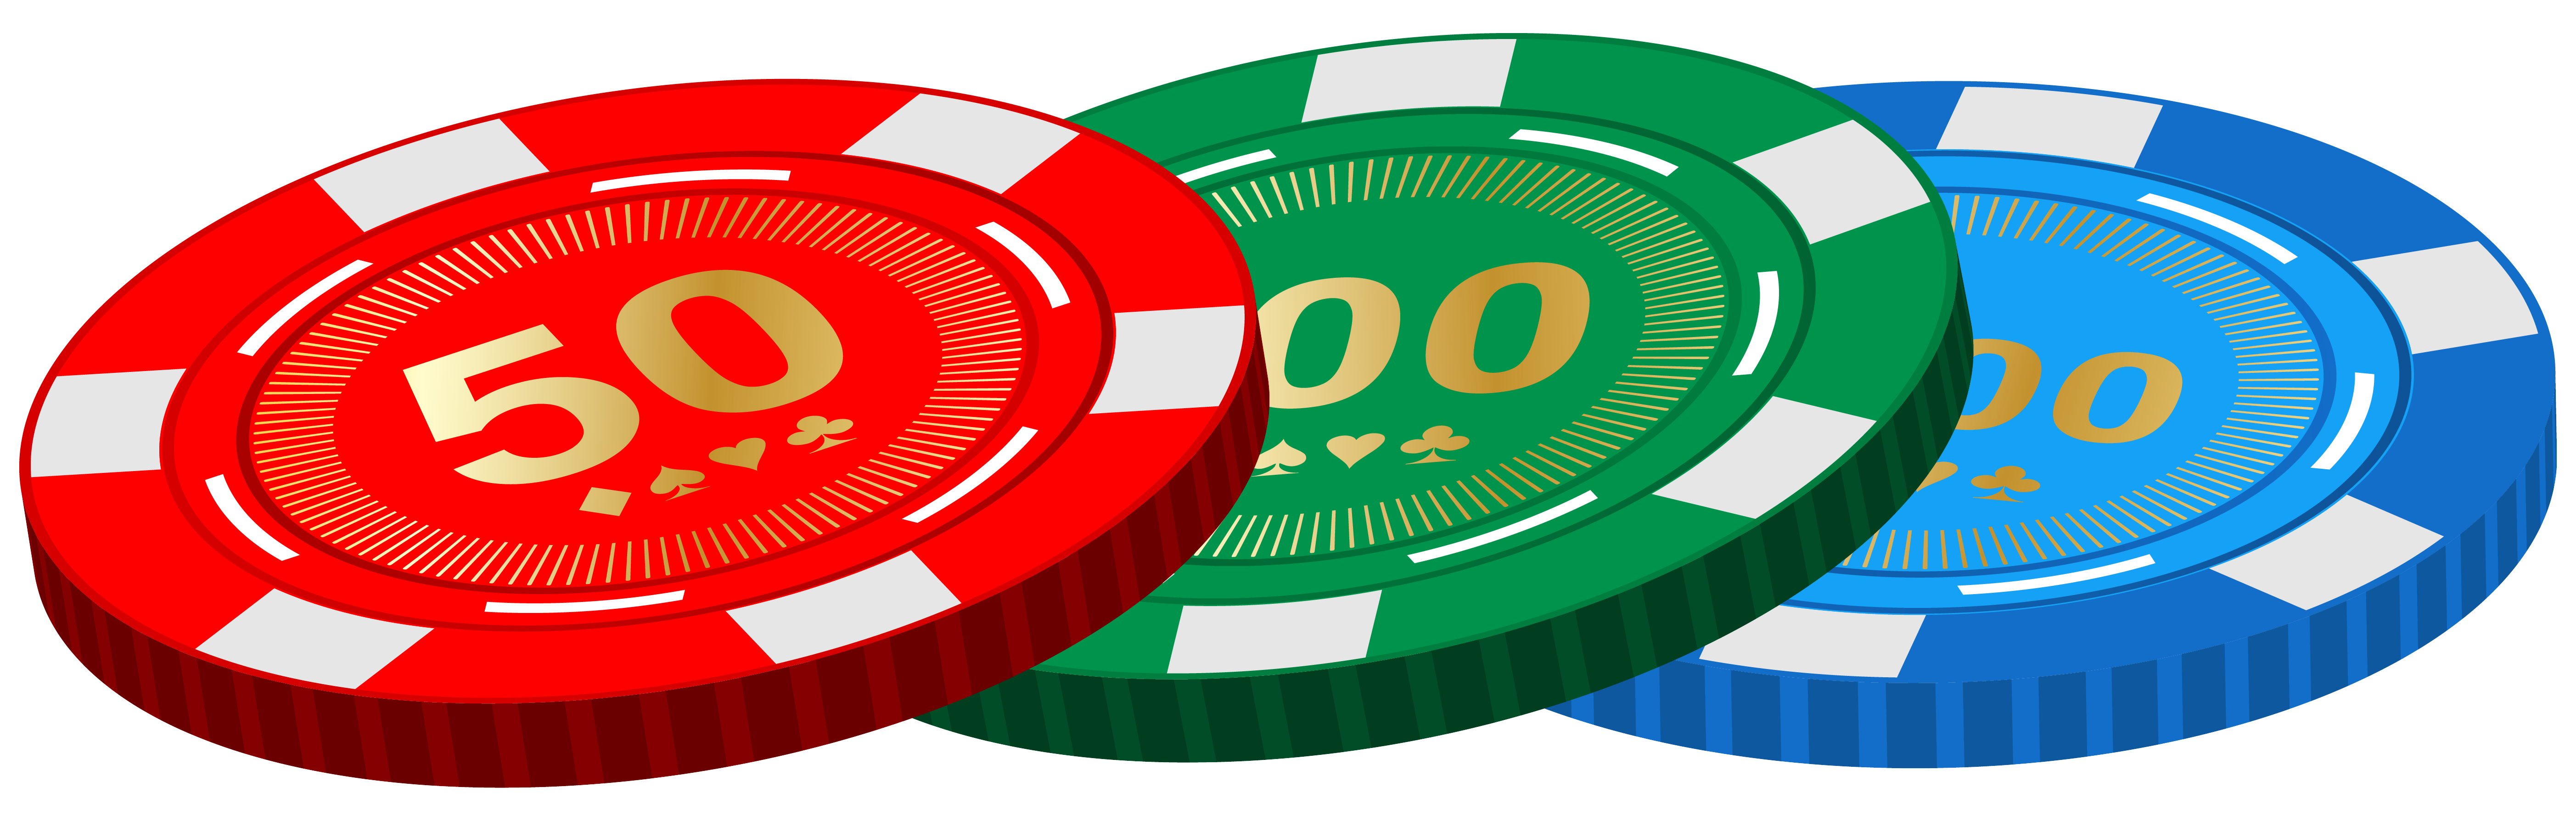 graphic free Las vegas clipart poker chip. Casino chips png best